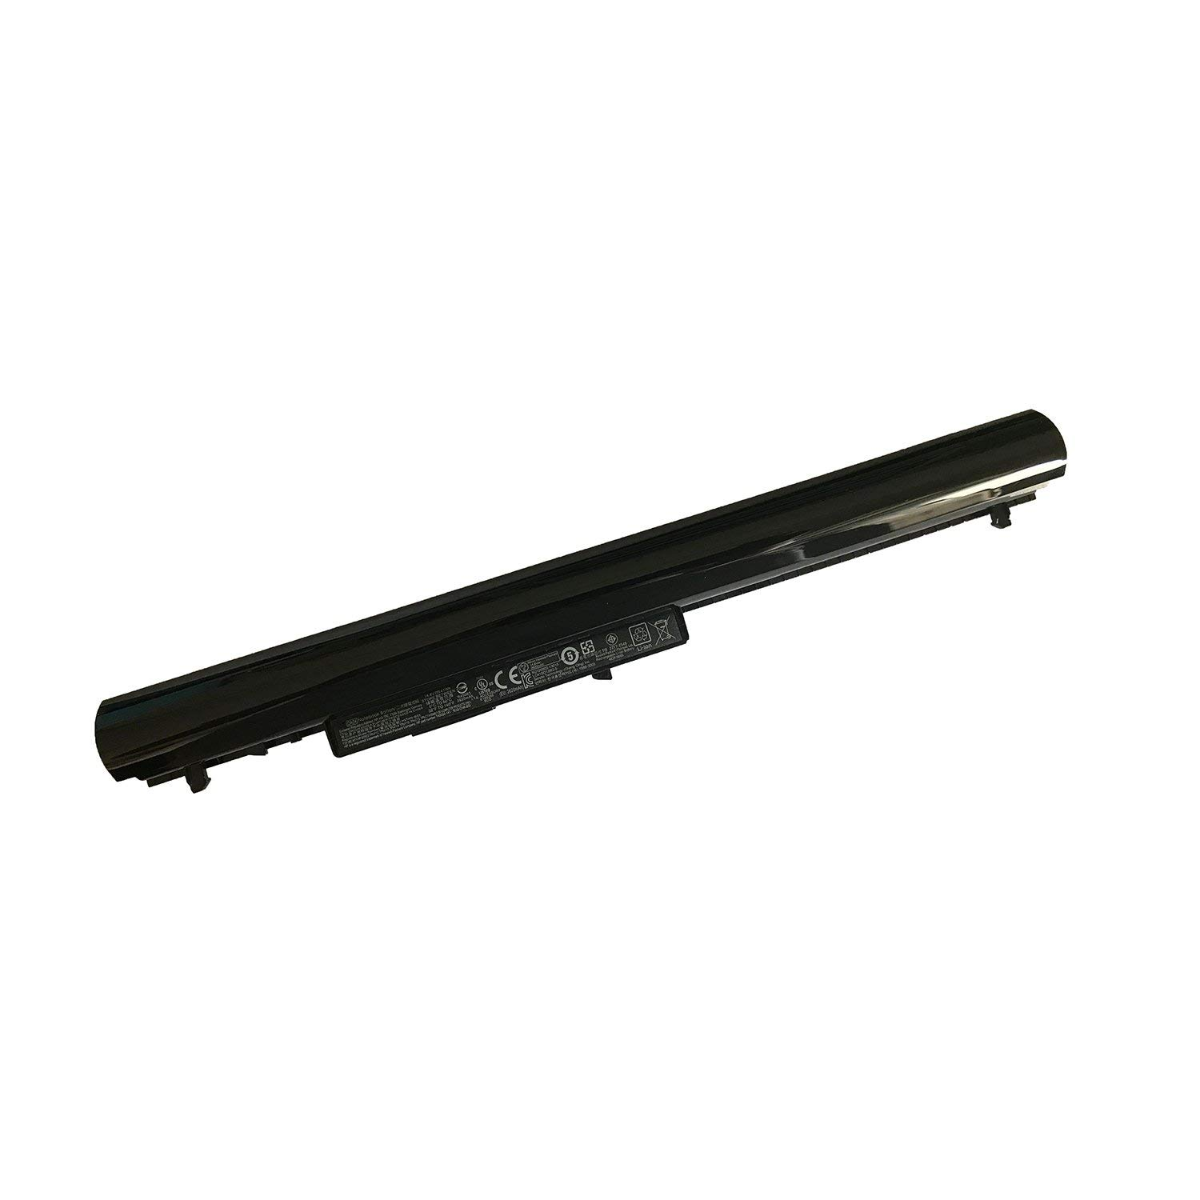 Μπαταρία Laptop - Battery for HP 15-R043TU 15-R044ER 15-R044NF 15-R044SR 15-R044TU 15-R044TX 15-R045ER 15-R045SR 15-R045TU OEM Υψηλής ποιότητας (Κωδ.1-BAT0002)